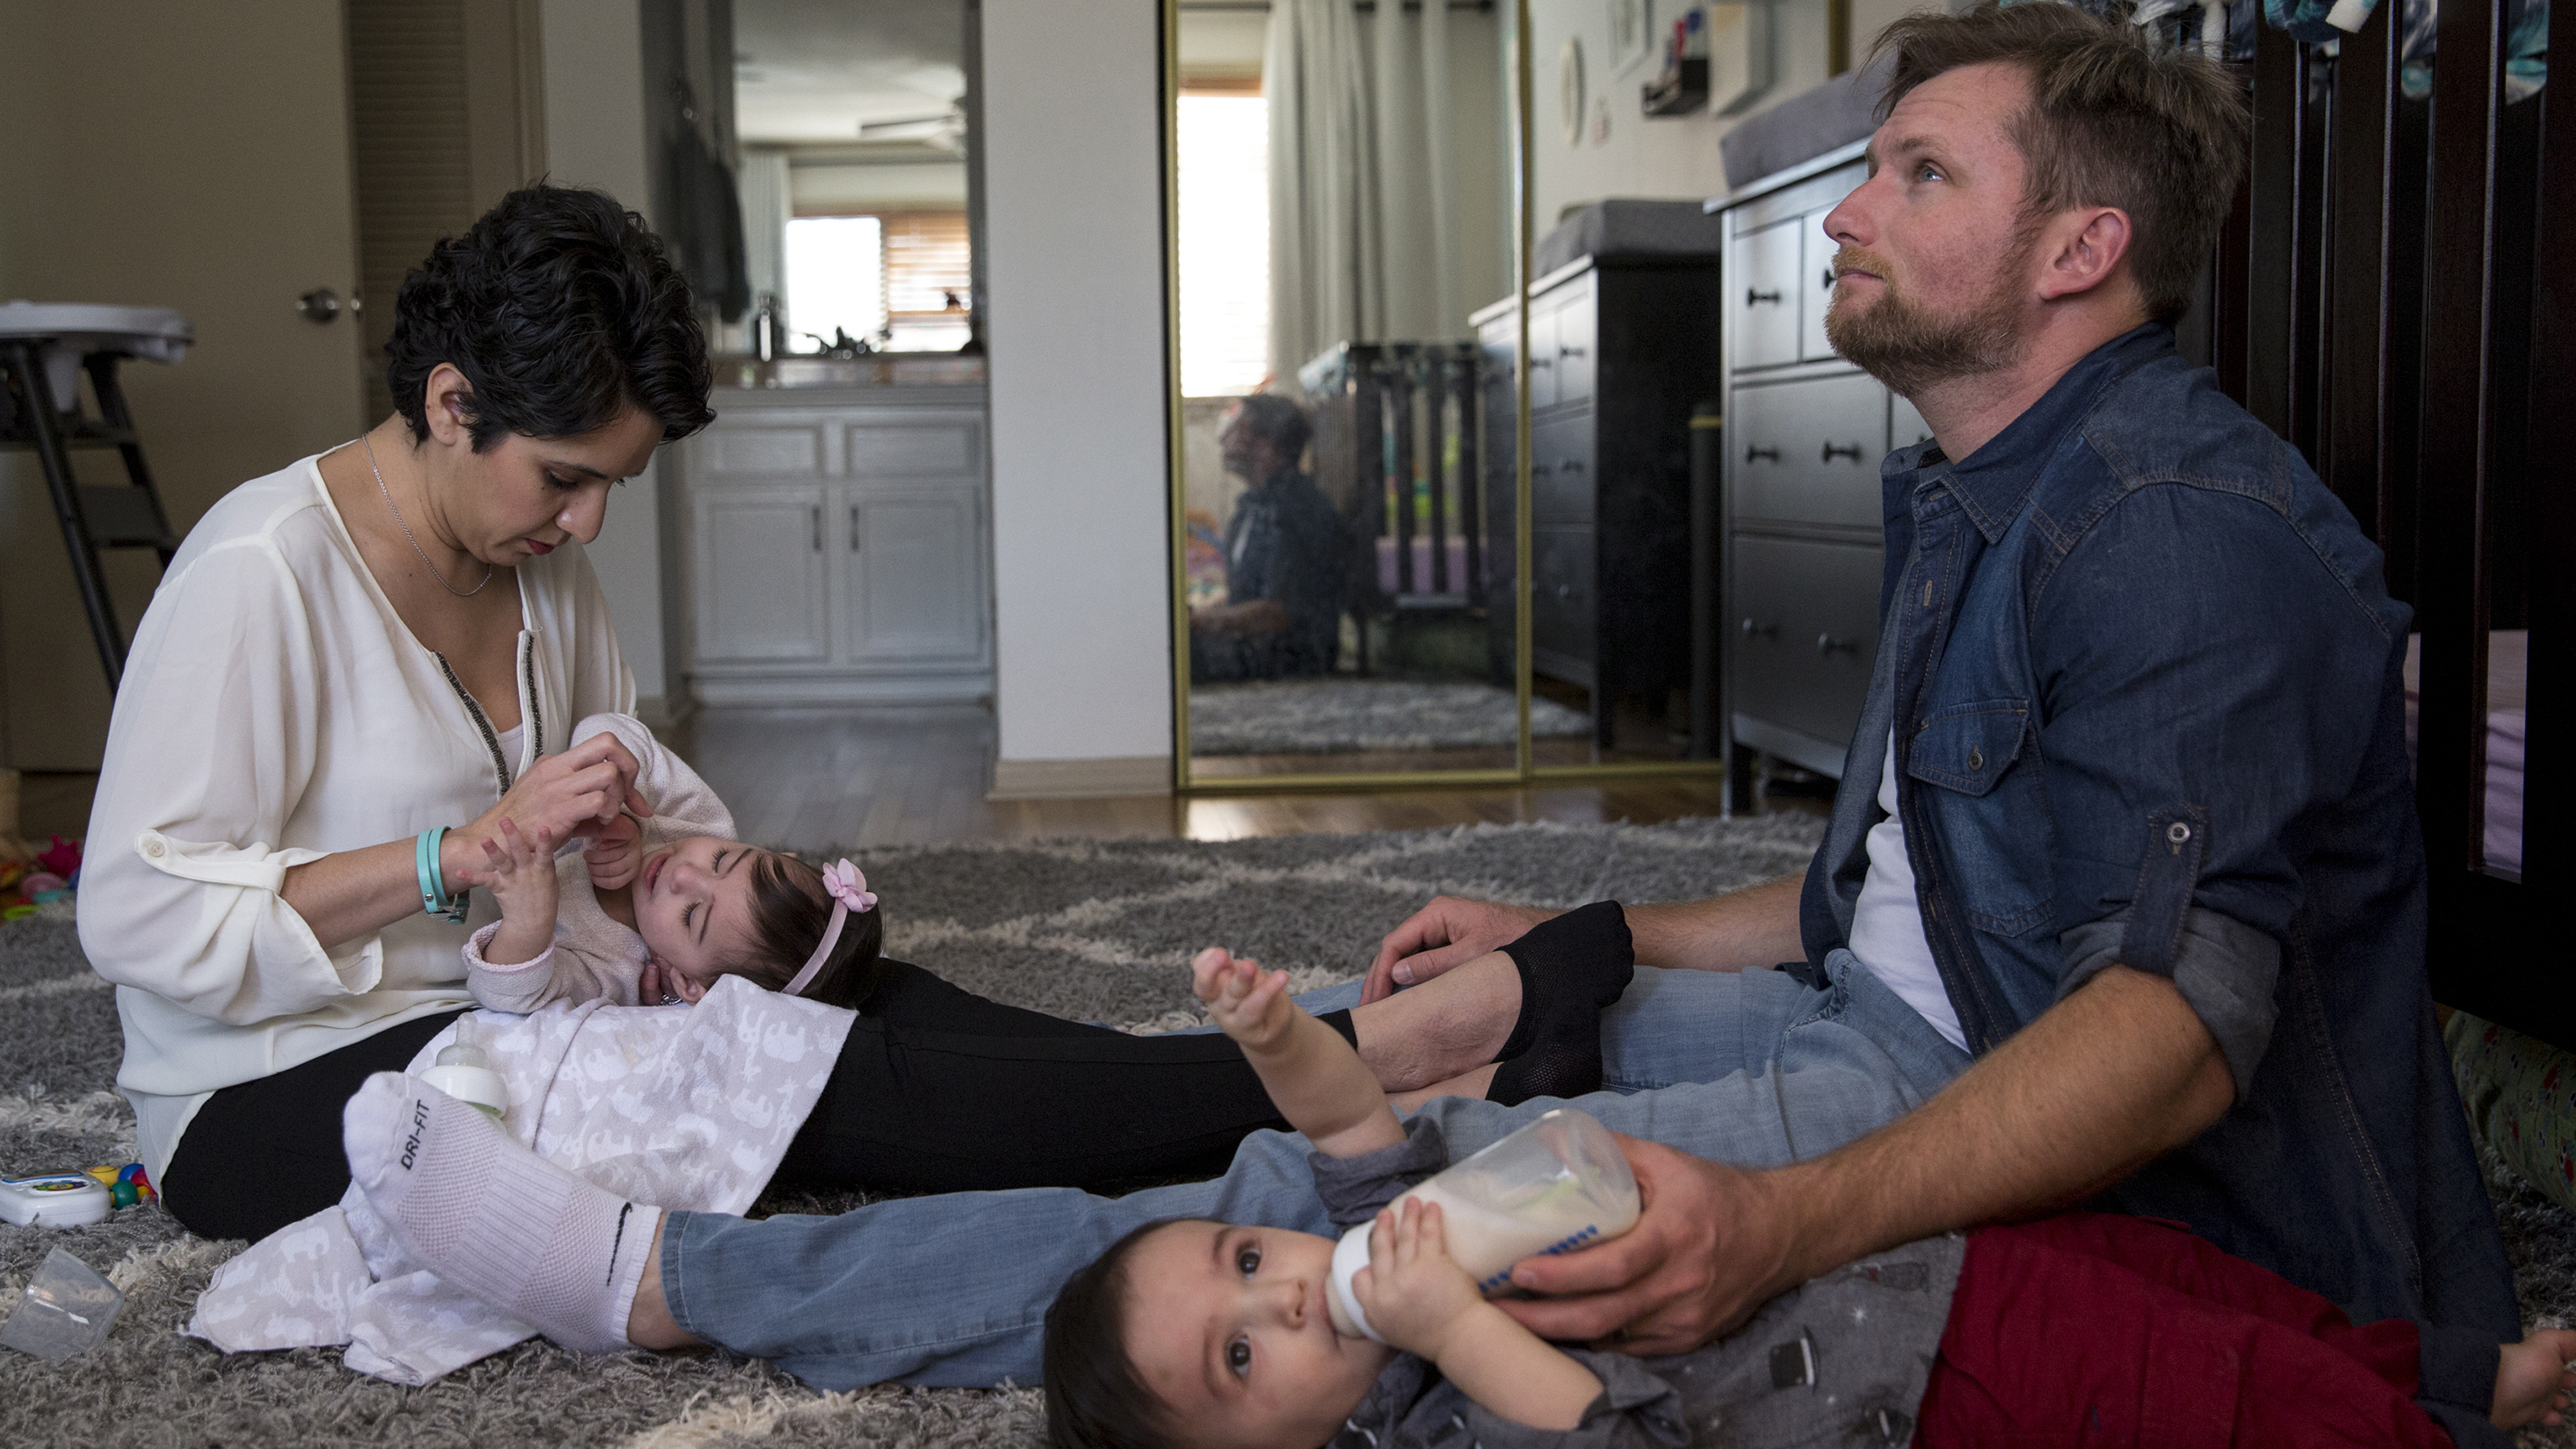 Leah Bahrencu, 35, and her husband, Vlad Bahrencu, 37, feed their twins, Lukas and Sorana, at home in Austin. (Ilana Panich-Linsman)